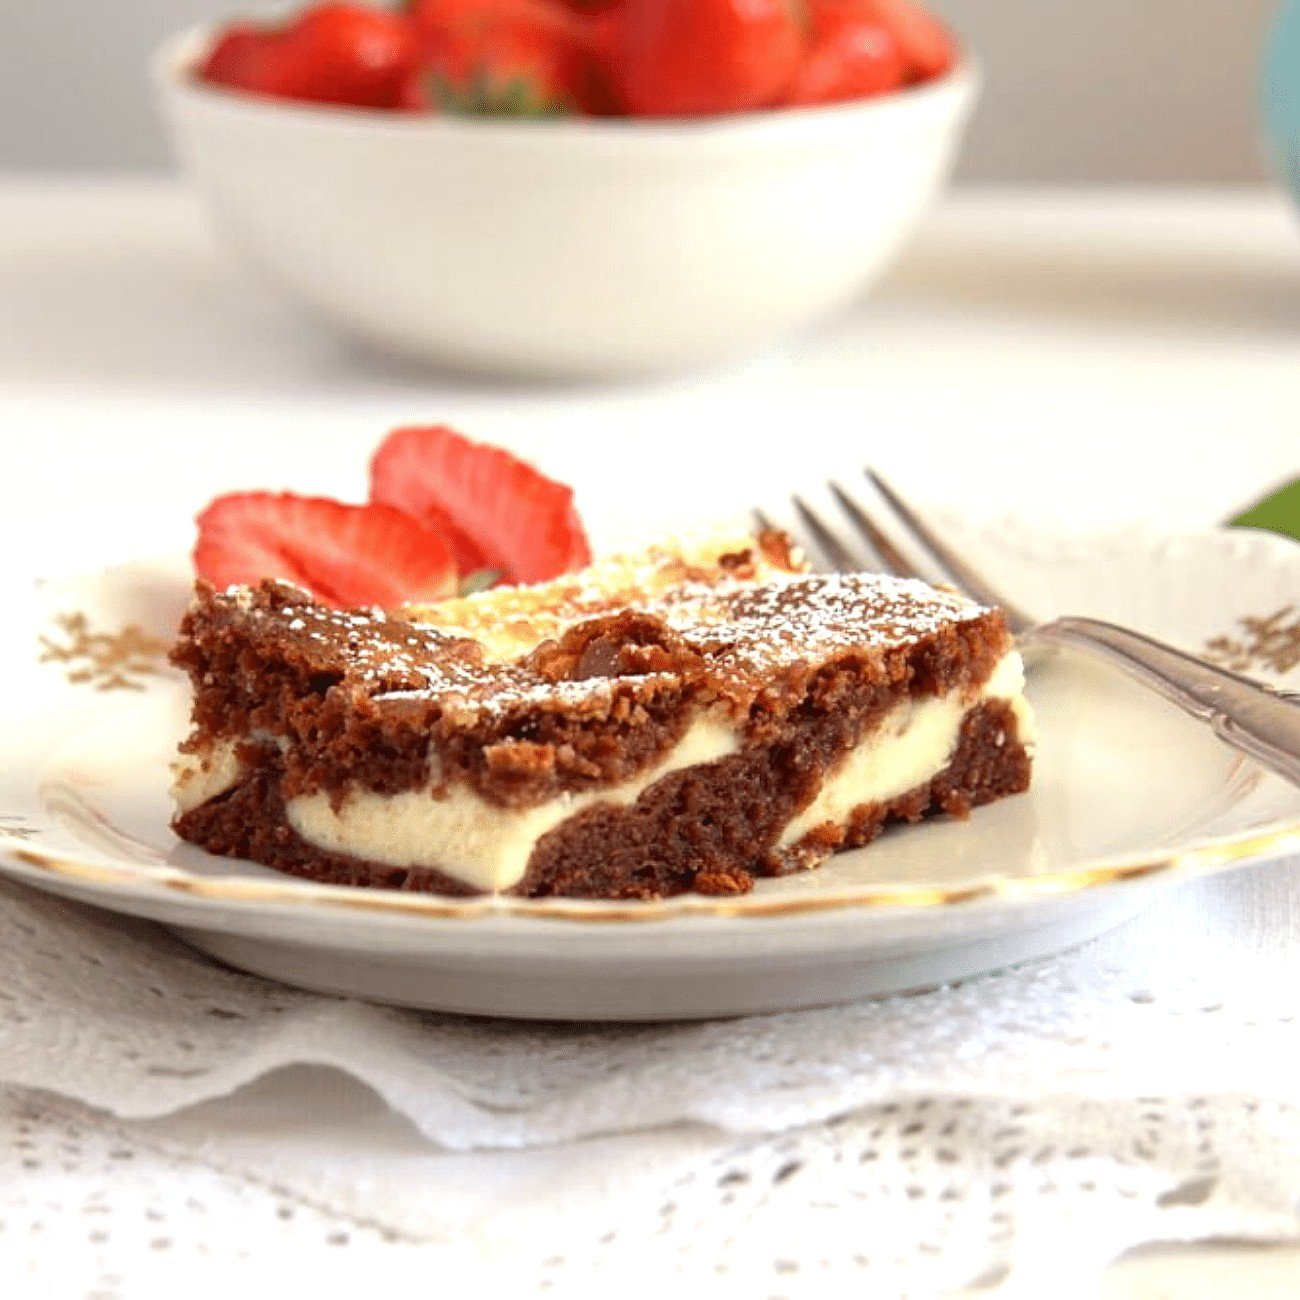 philadelphia cream cheese brownies served with fresh strawberries